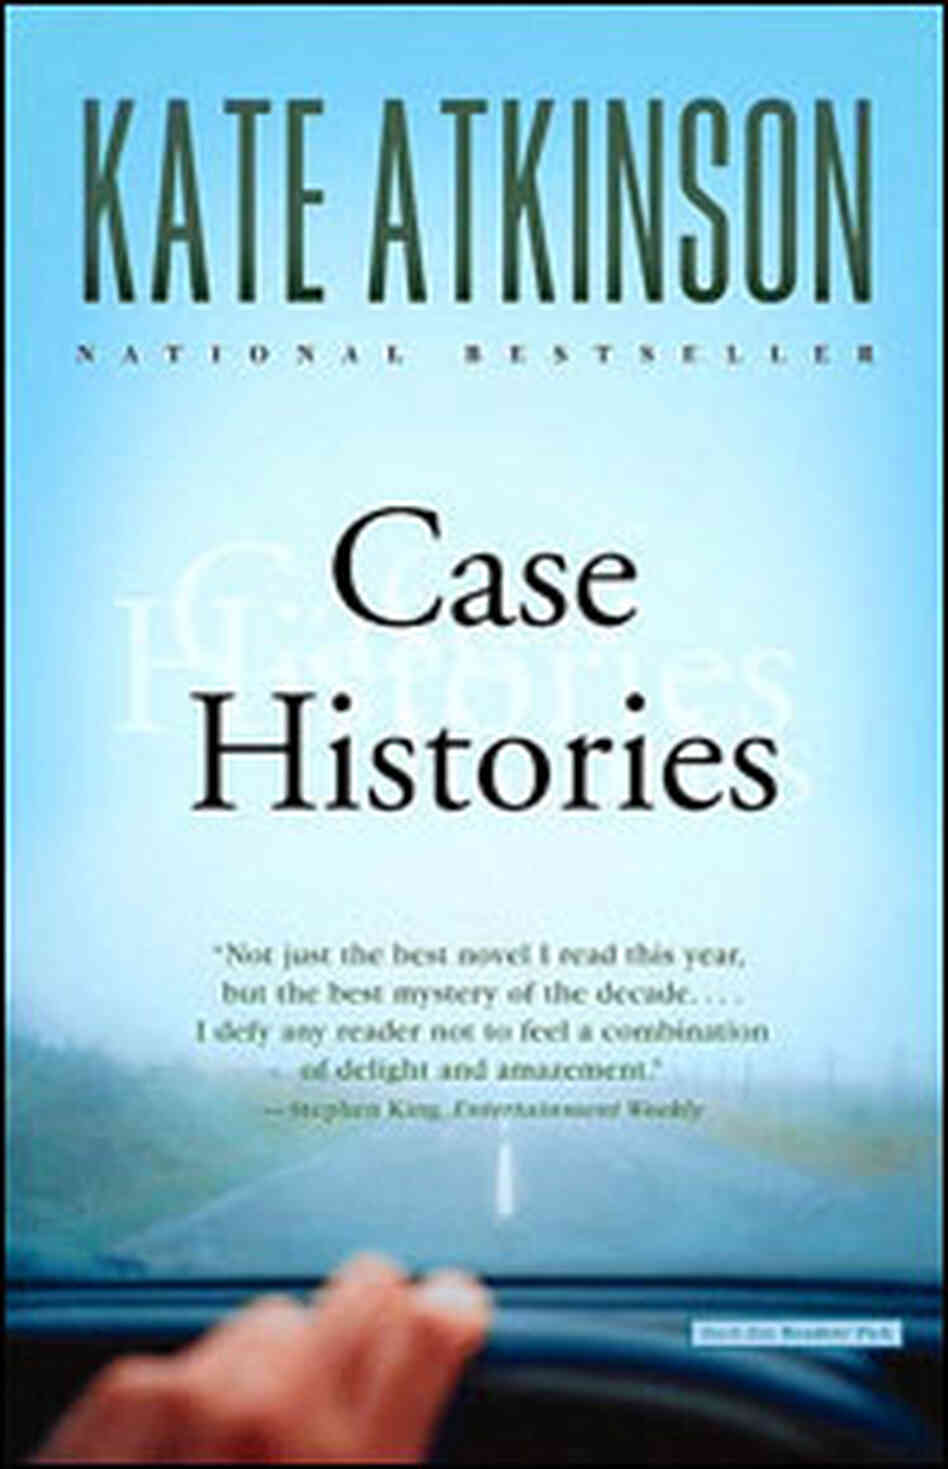 'Case Histories' cover